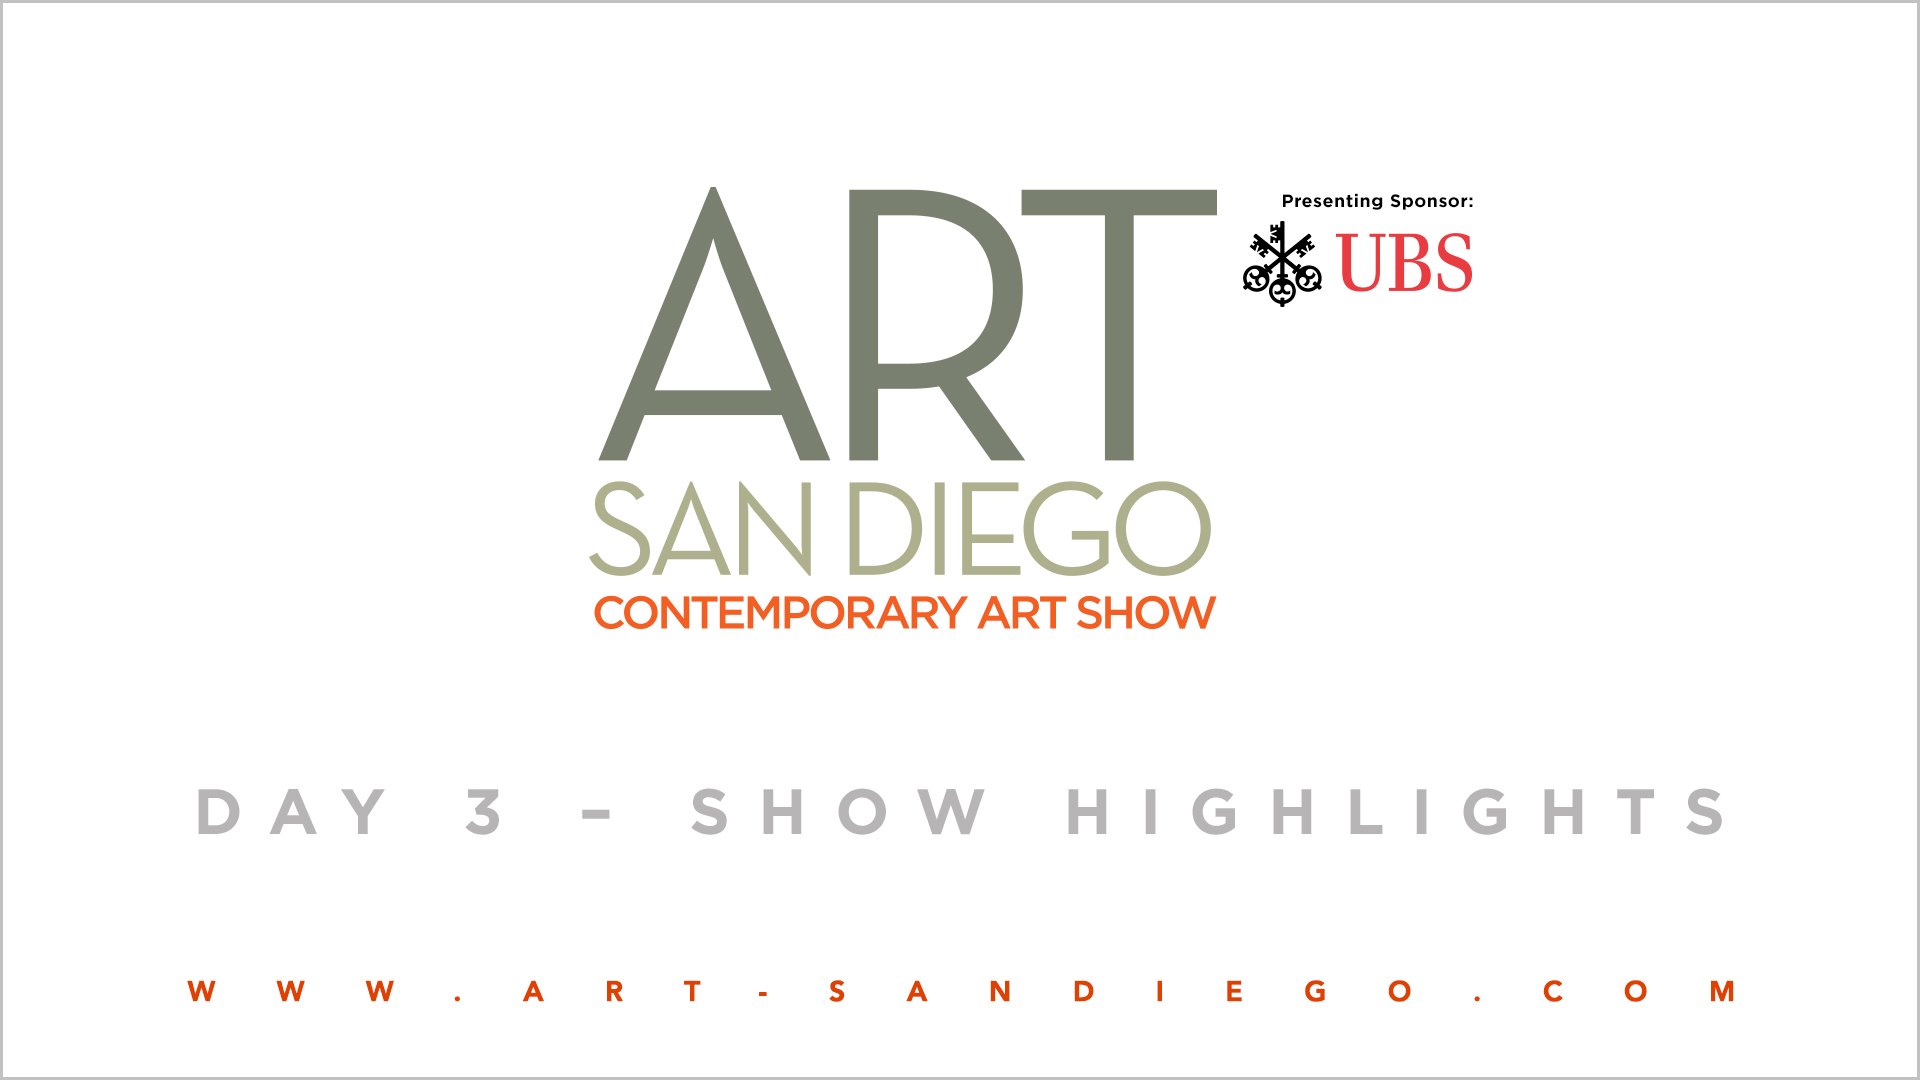 Art San Diego 2016 - Day 3 Hightlights